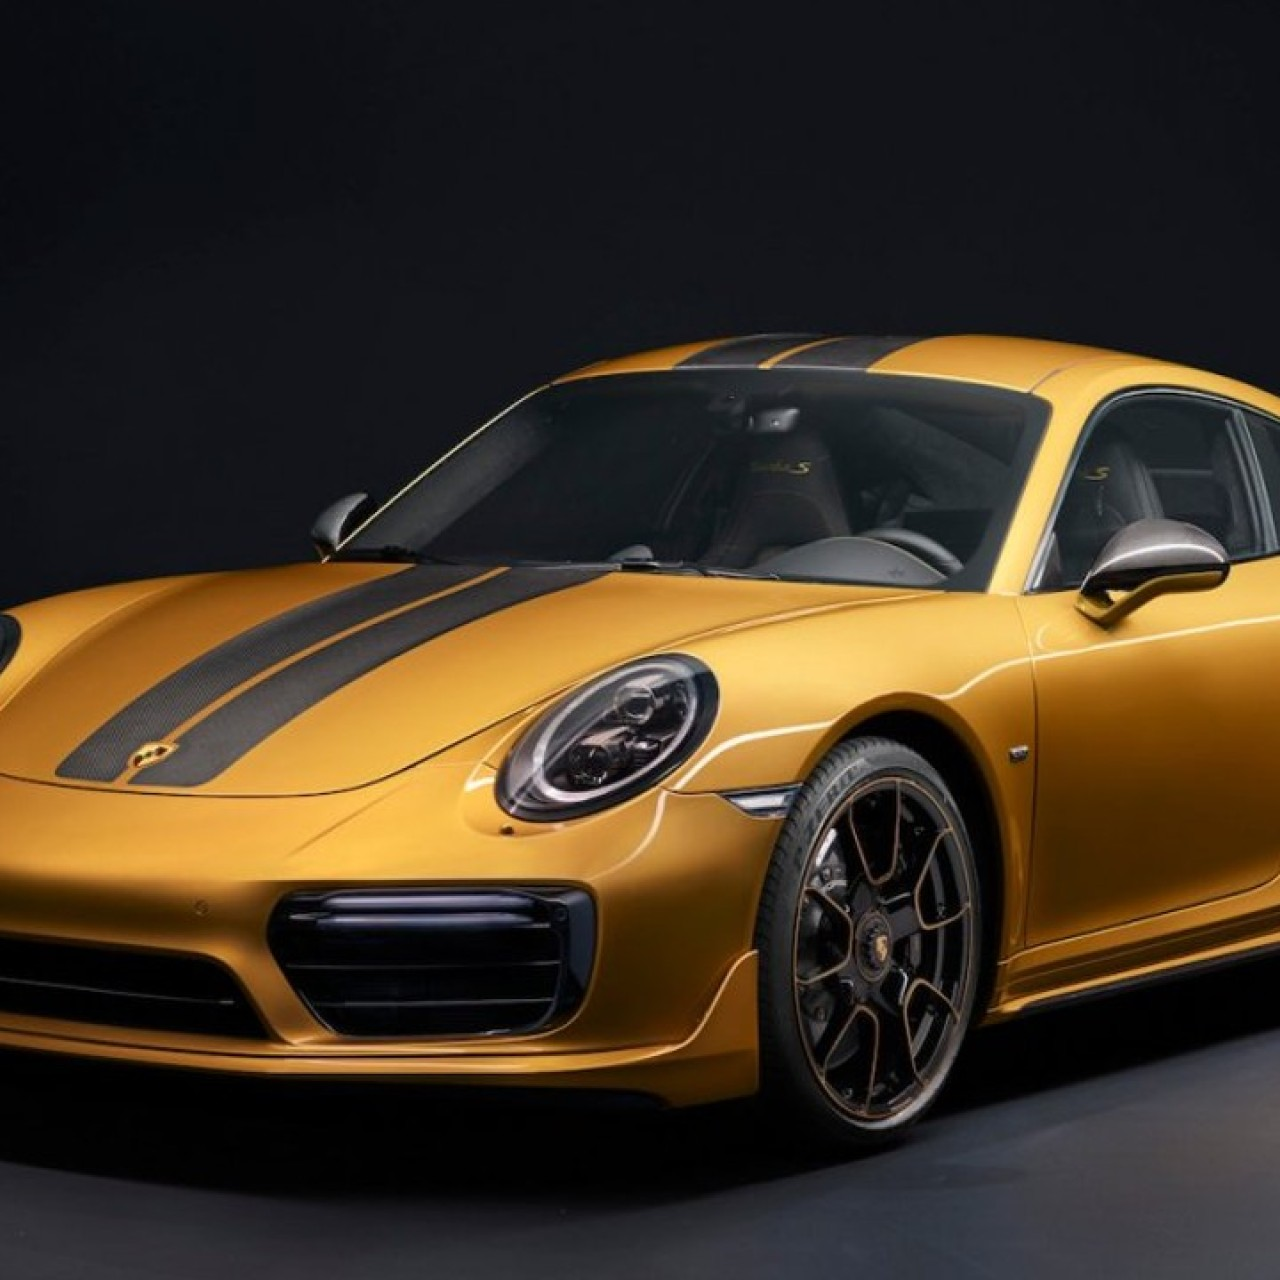 b52edf4a8bfb8 The Porsche 911 models never looked so good – all 22 of them | South ...